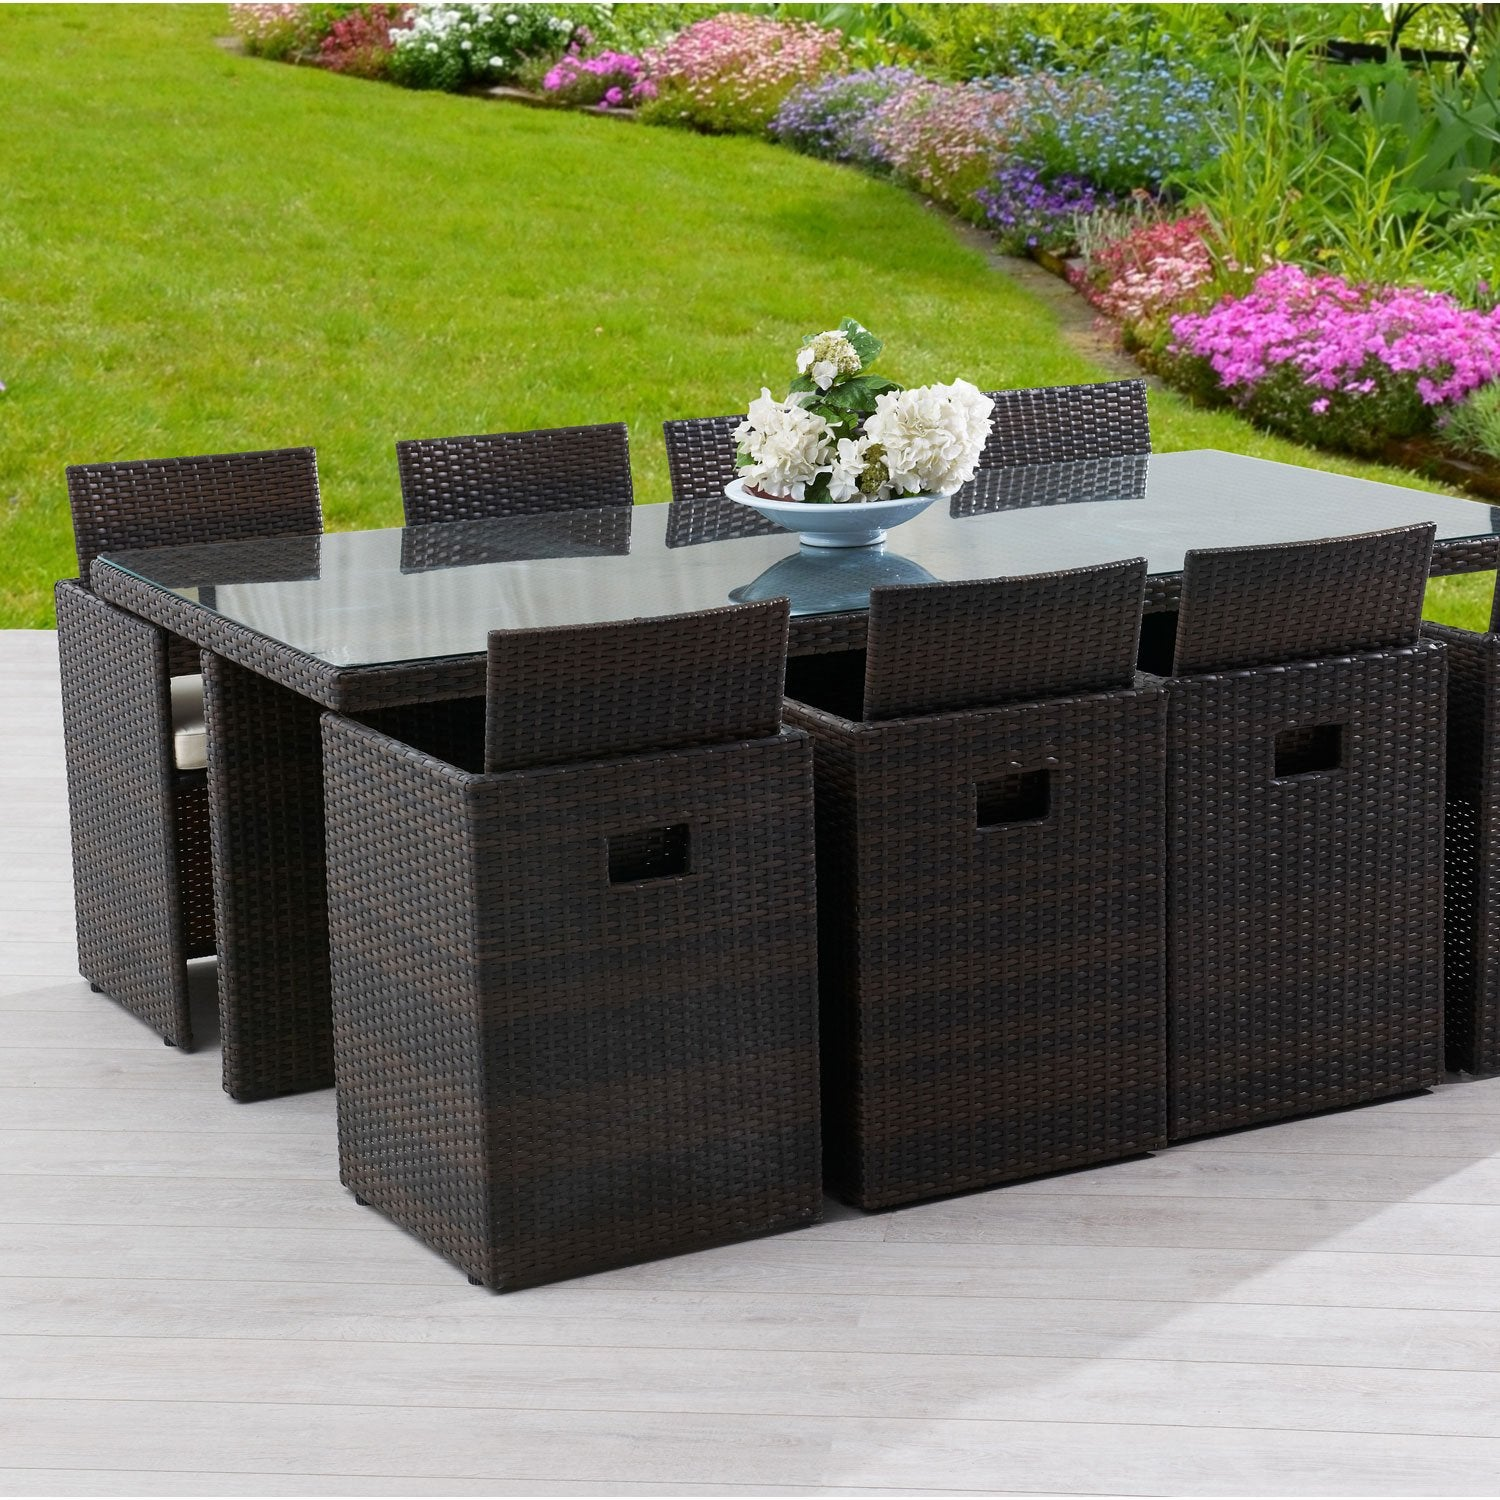 Salon de jardin encastrable r sine tress e marron 1 table - Salon de jardin pas cher castorama ...